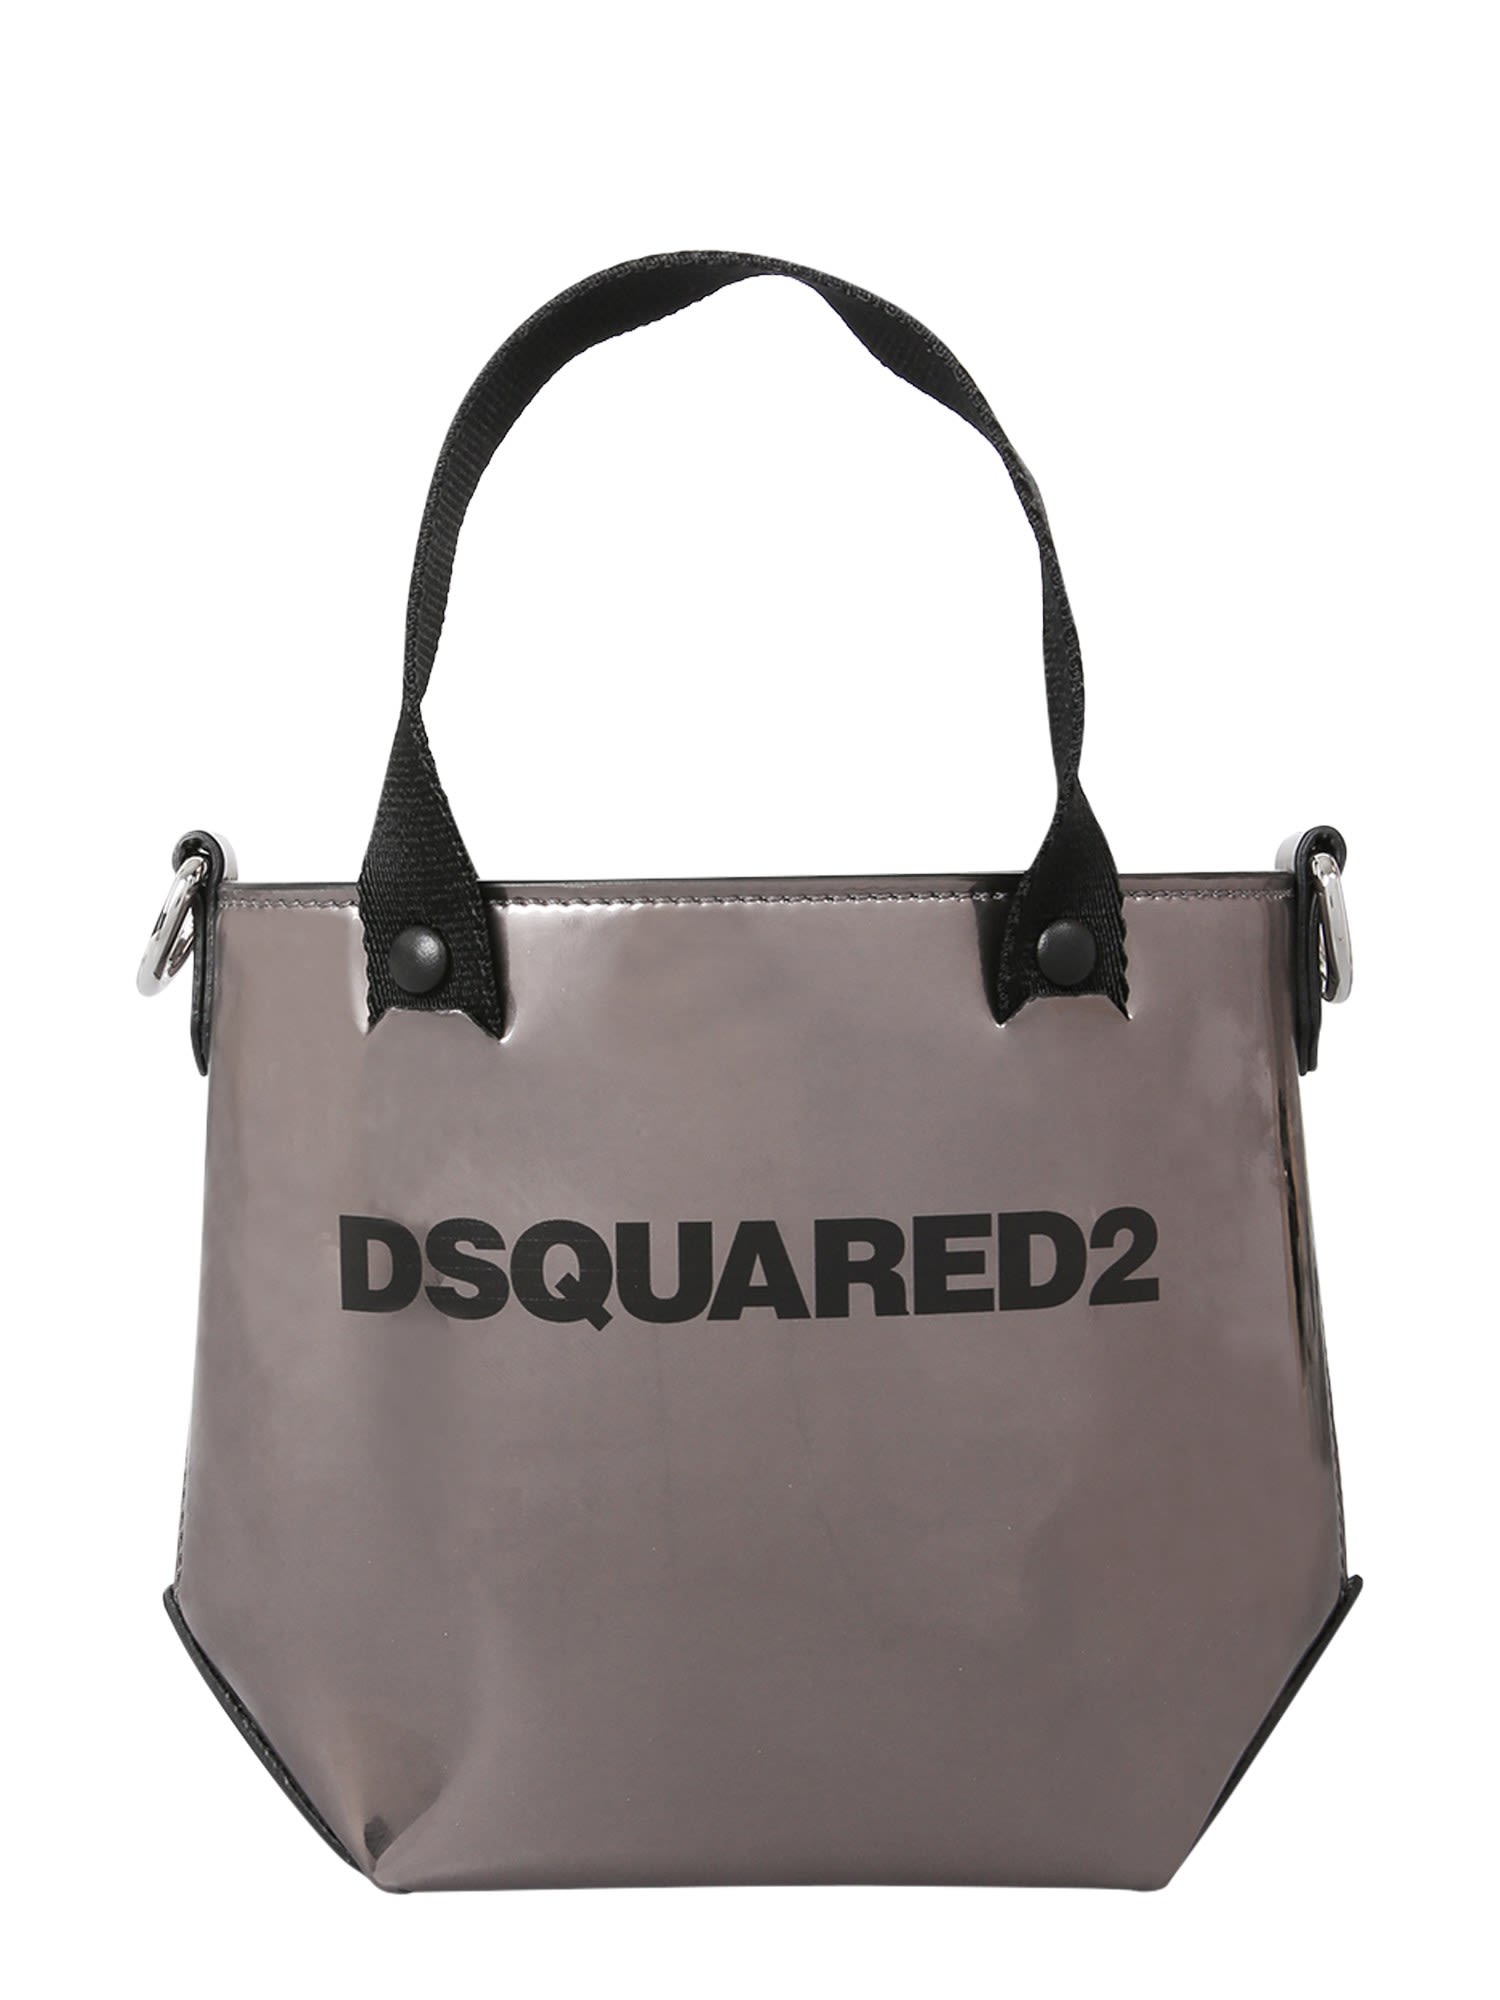 Dsquared2 Leathers MINI TOTE BAG WITH LOGO